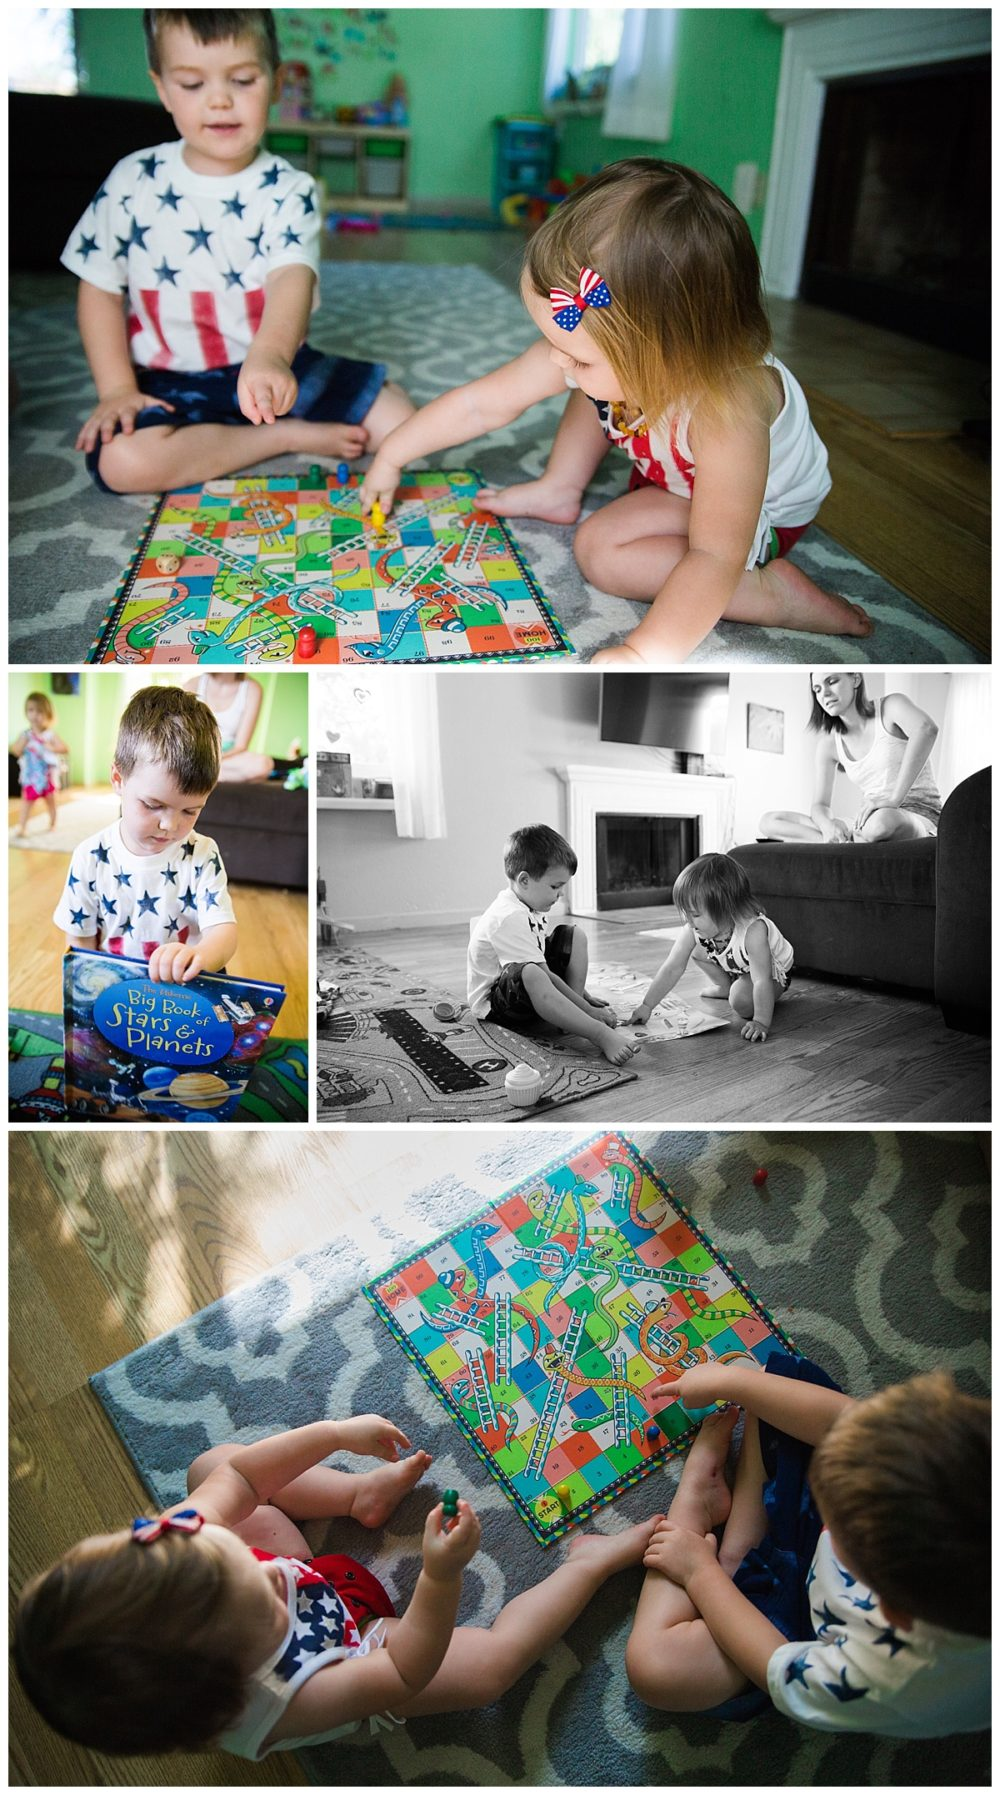 board games, chutes and ladders, living room floor, stars and stripes